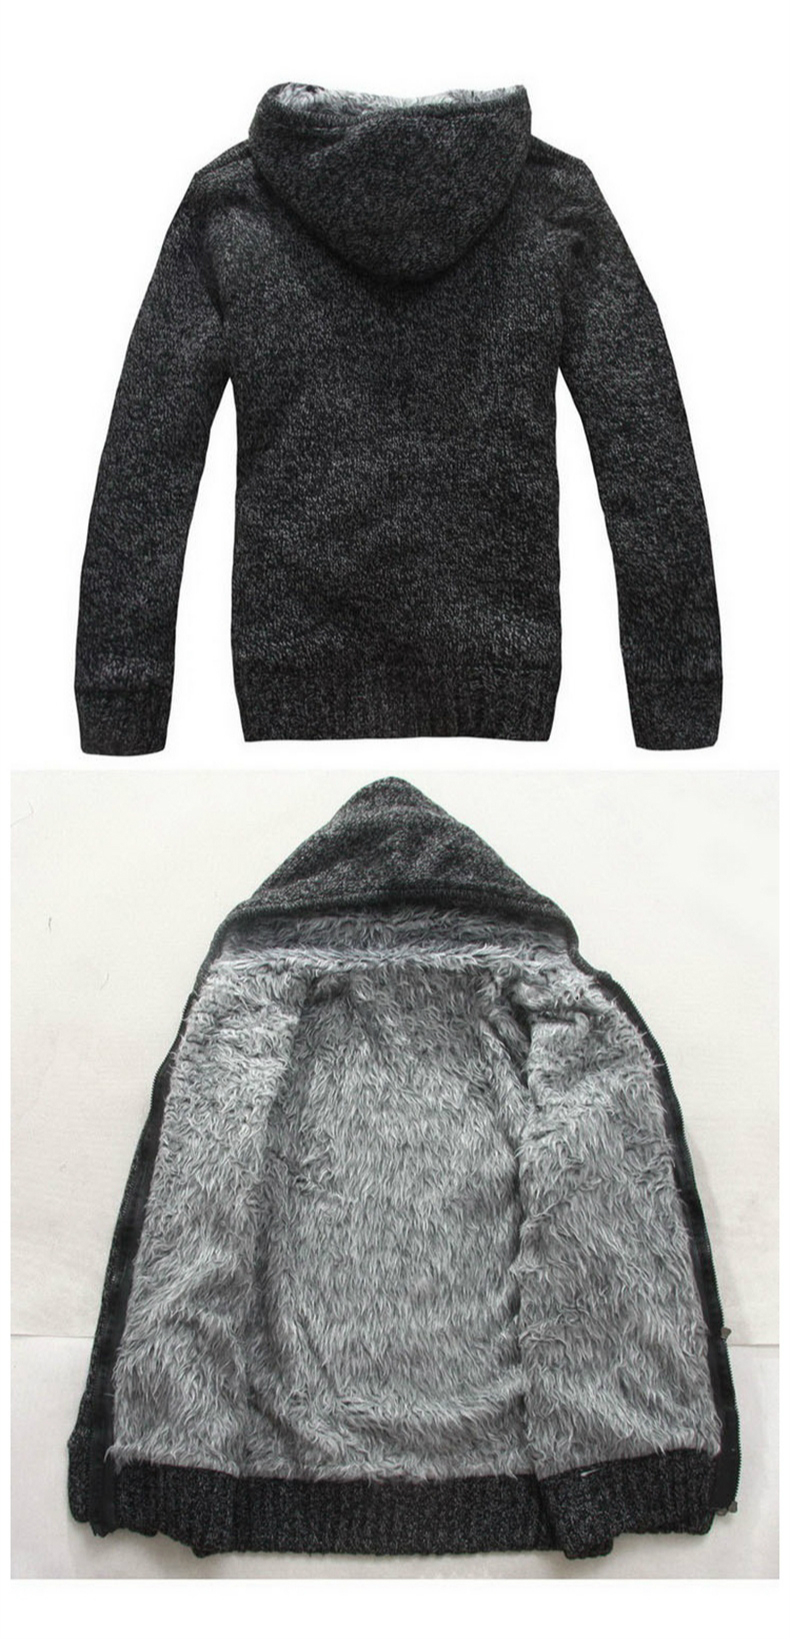 Cashmere Liner Sweaters Turn-down Collar